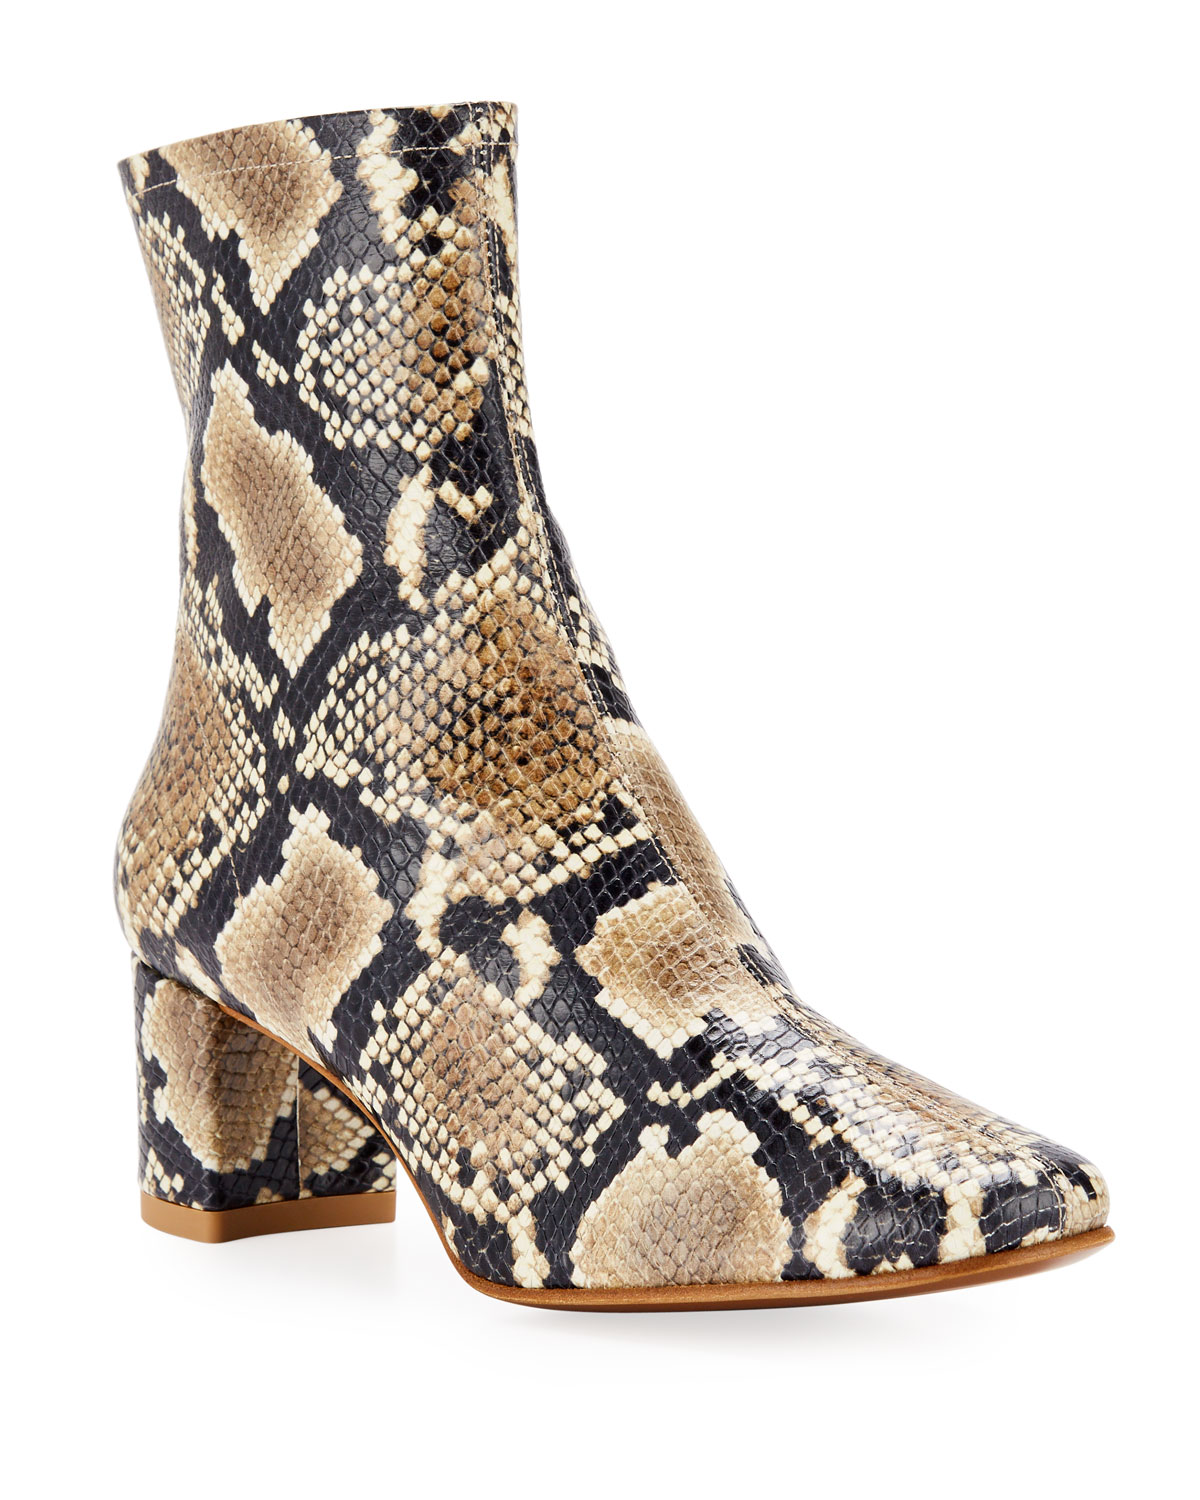 BY FAR Sofia Snake-Print Booties